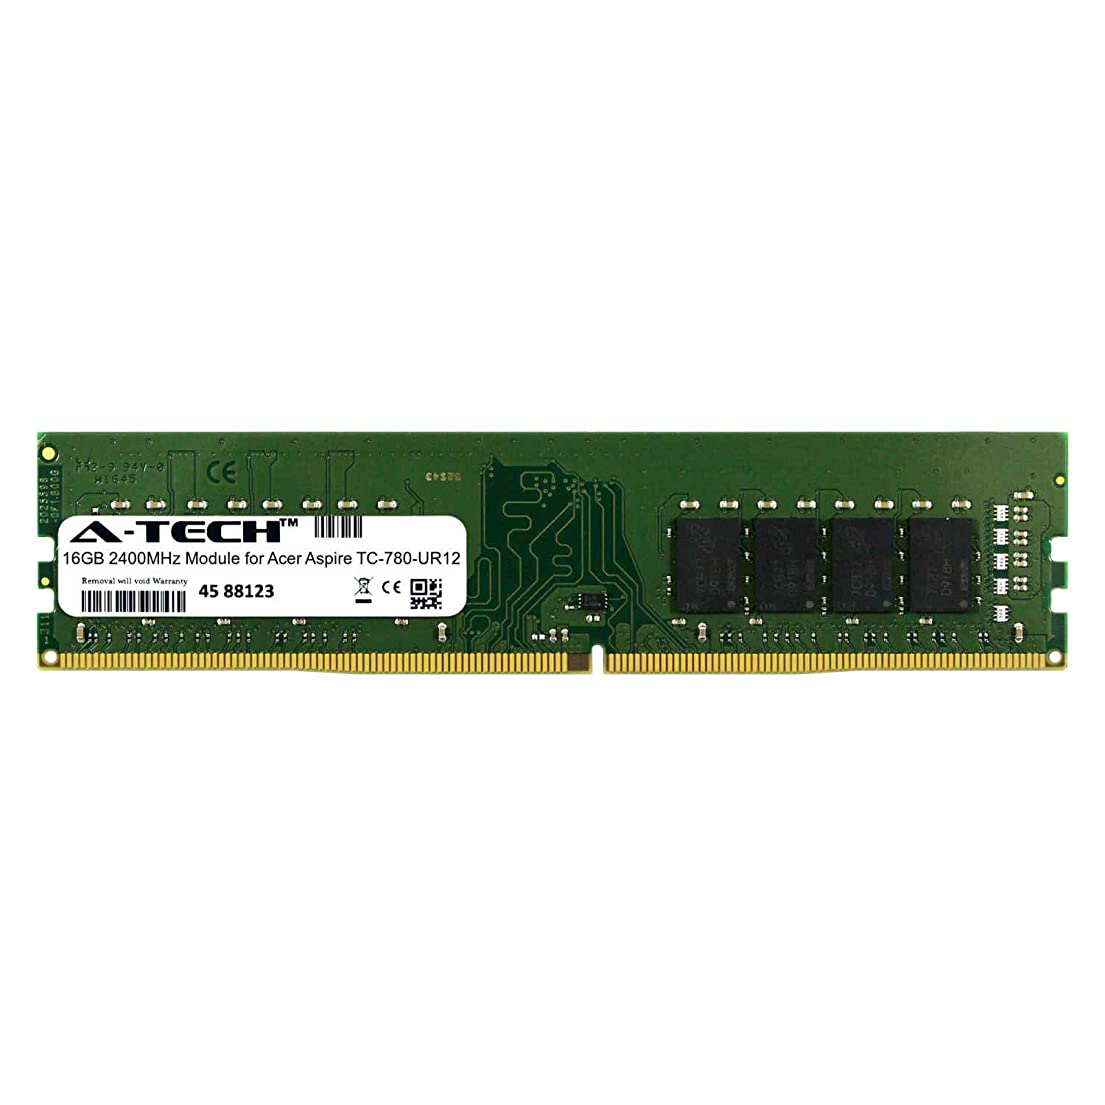 A-Tech 16GB Module for Acer Aspire TC-780-UR12 Desktop & Workstation Motherboard Compatible DDR4 2400Mhz Memory Ram (ATMS267491A25822X1) pfrwj2021023063